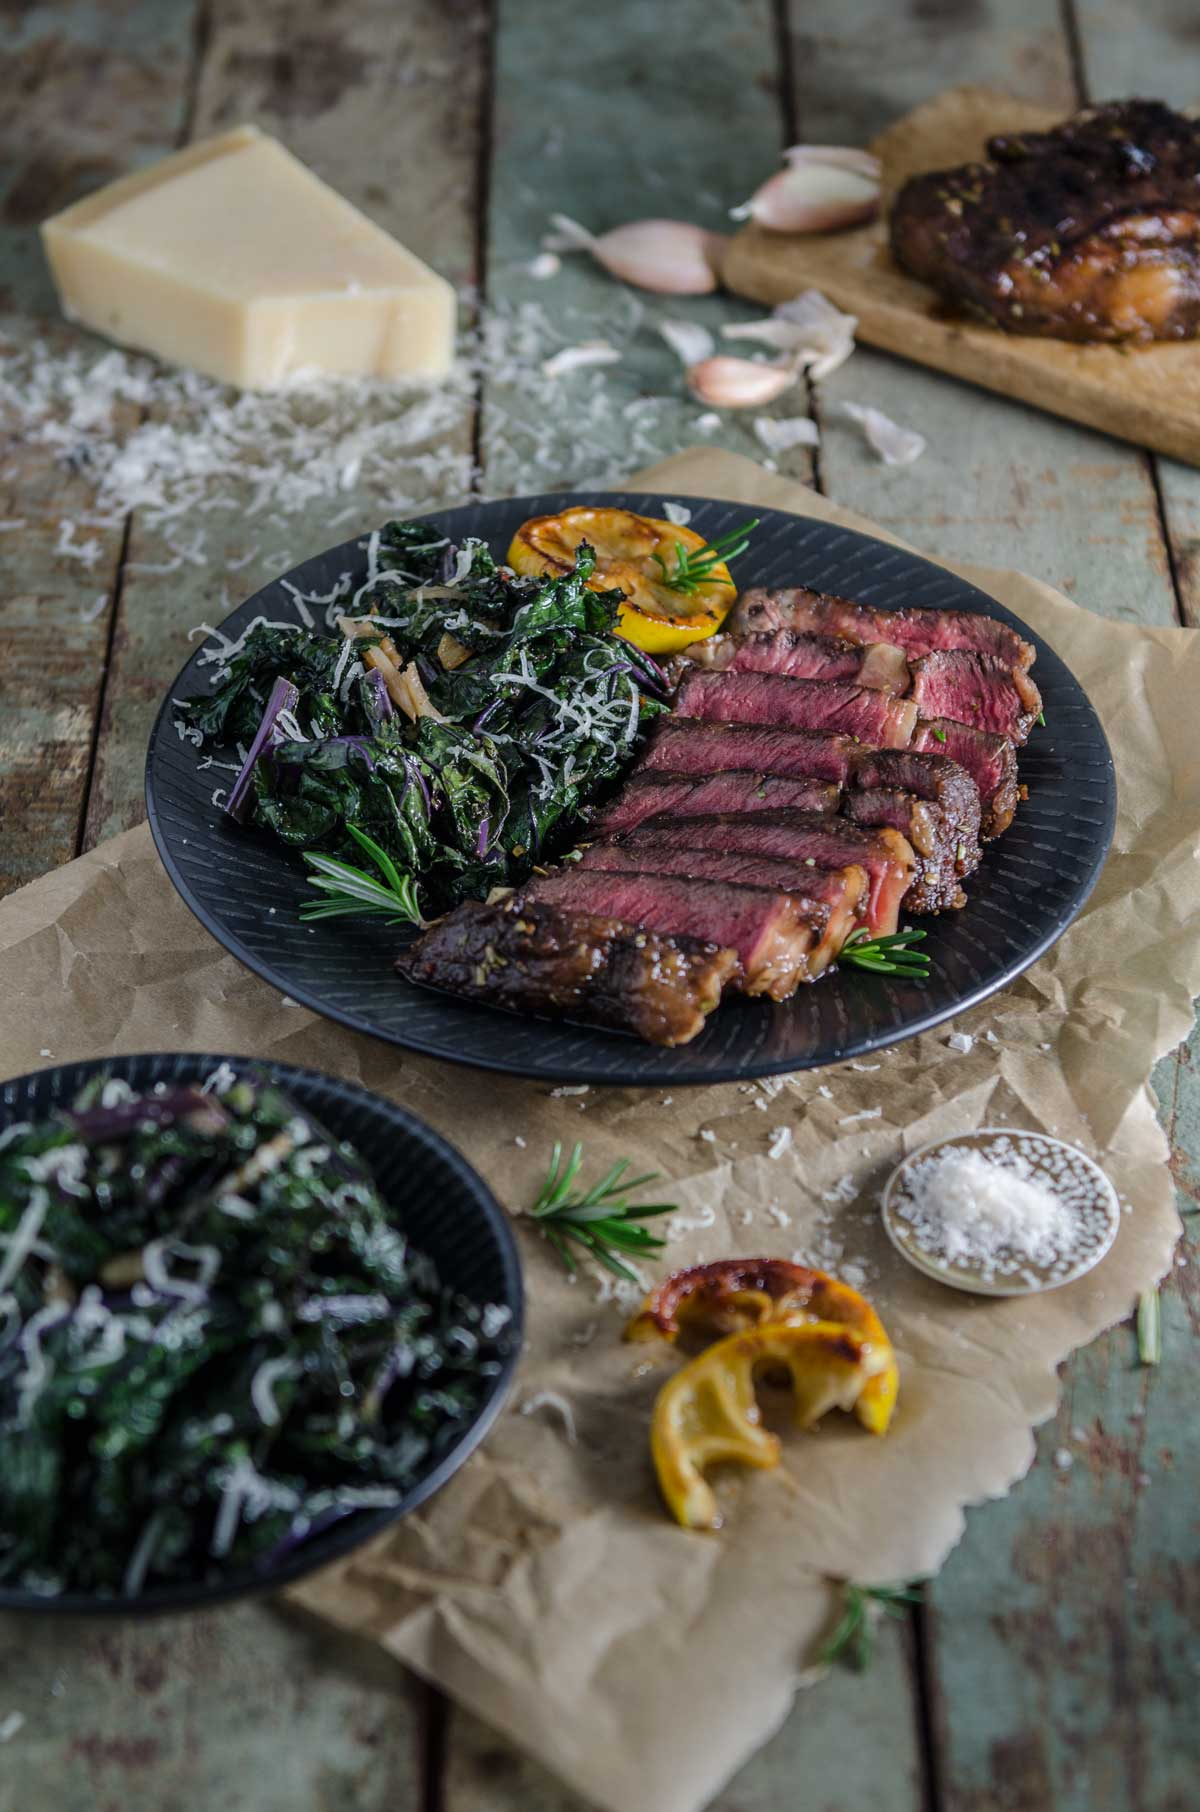 Balsamic and Rosemary Steak with Sautéed Kale | Chew Town Food Blog